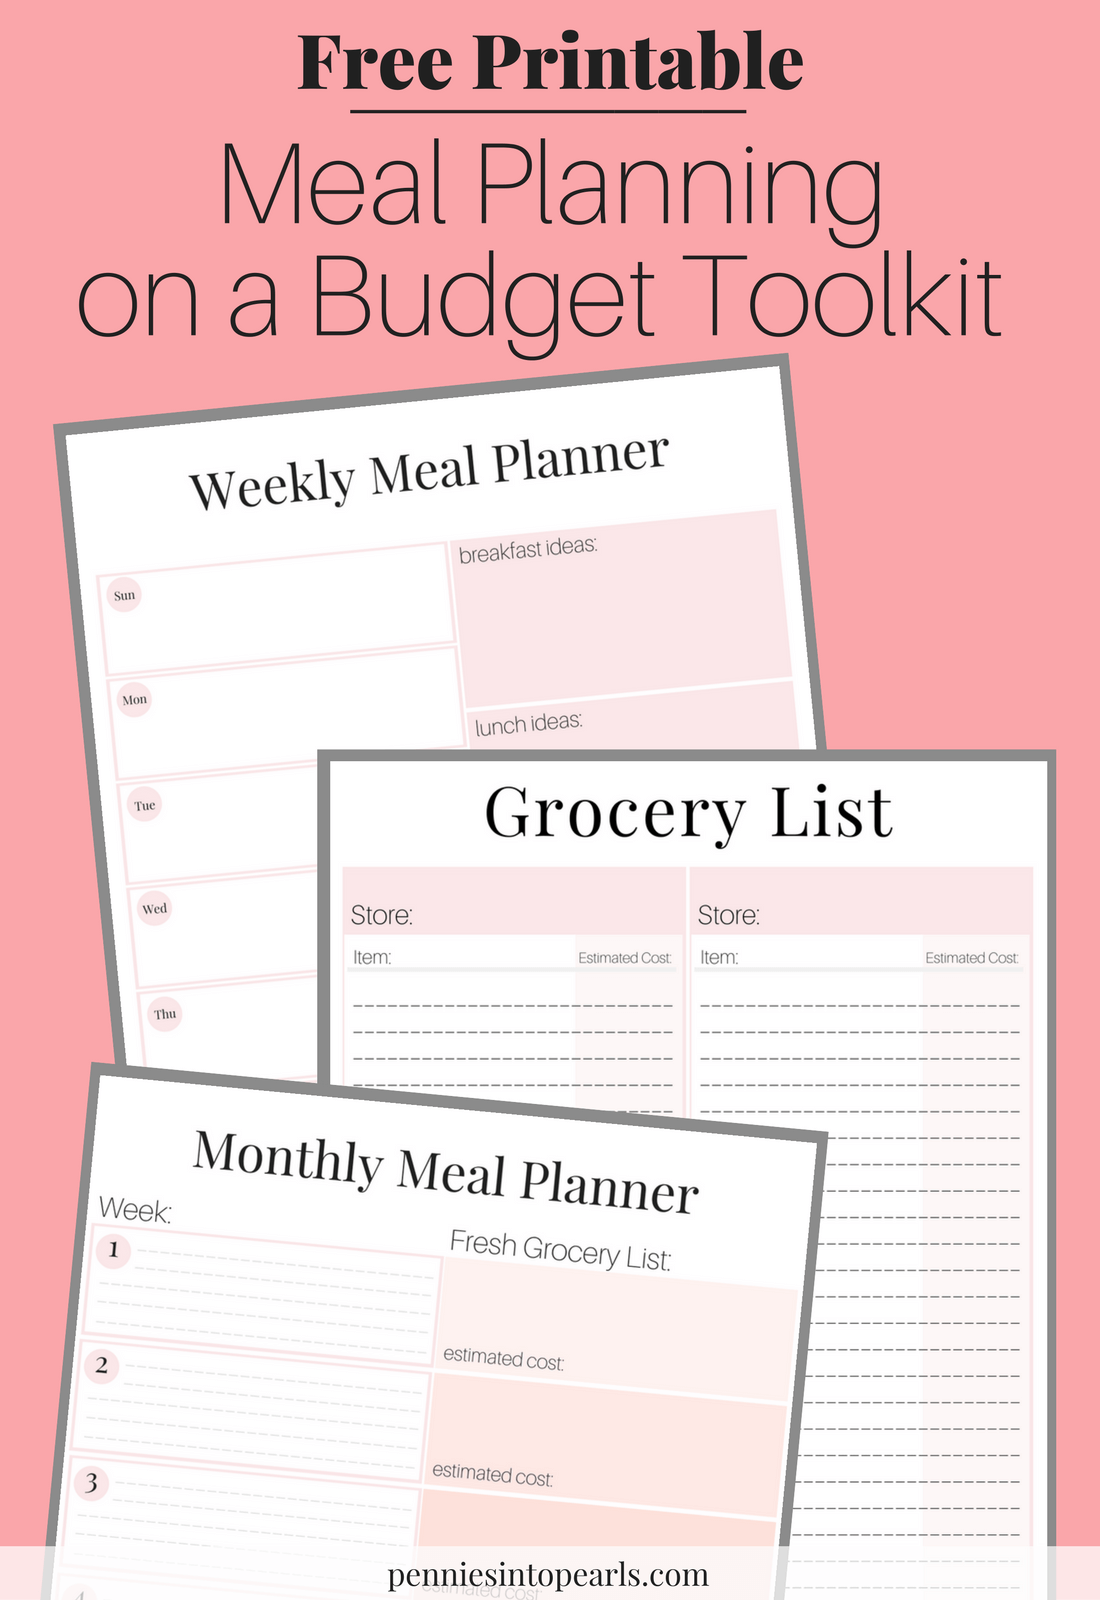 image relating to Meal Planning Printable referred to as No cost Printable - Evening meal Developing upon a Price range Toolkit